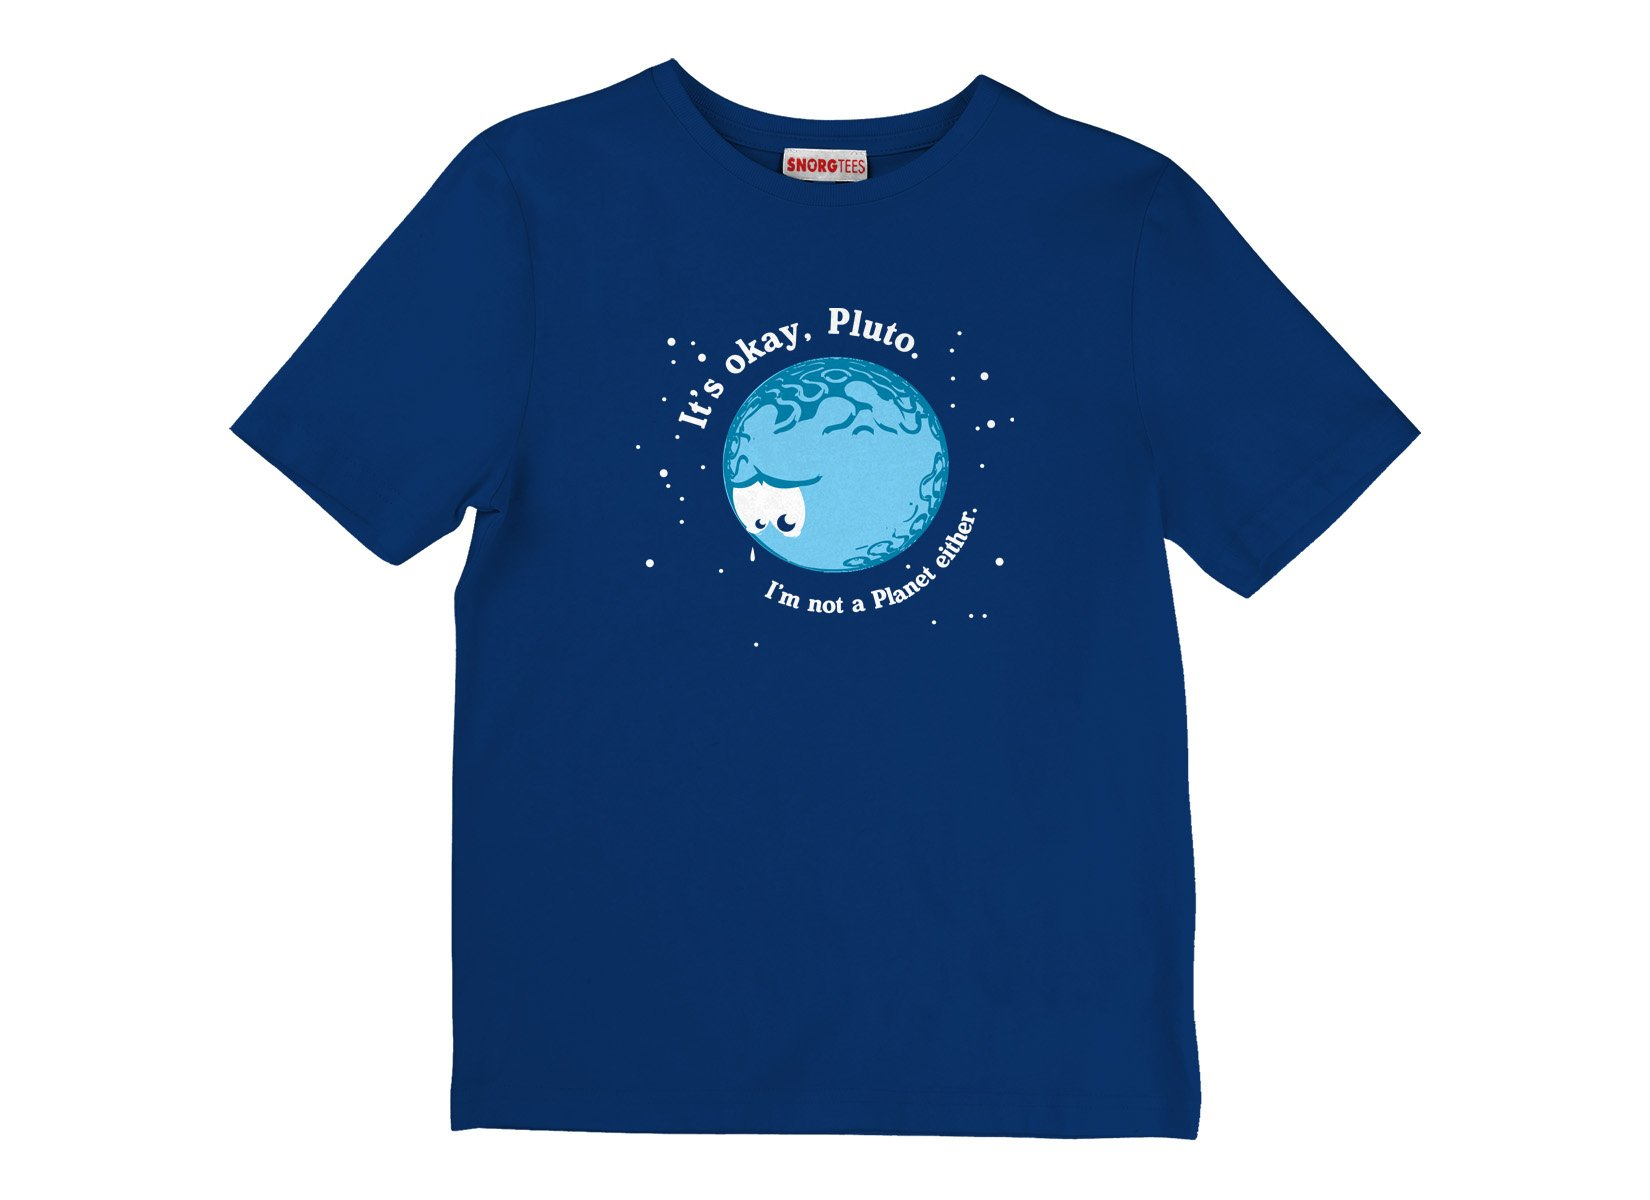 It's Okay Pluto on Kids T-Shirt